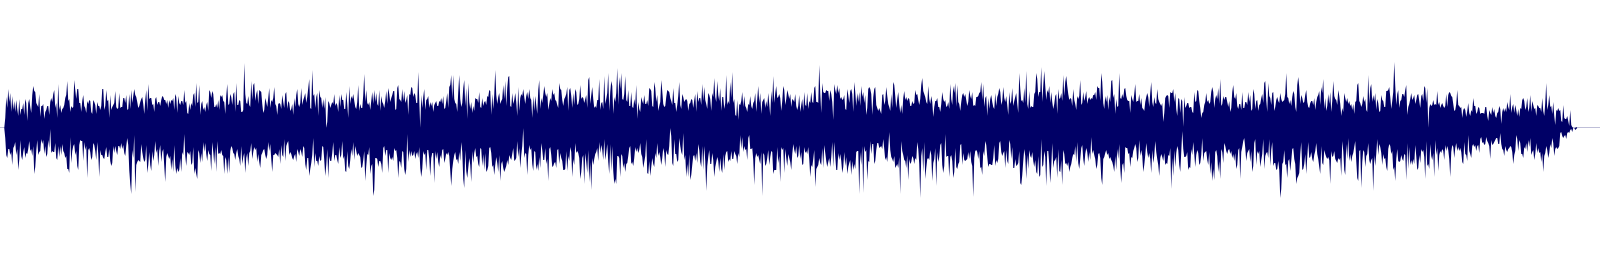 waveform of track #132290